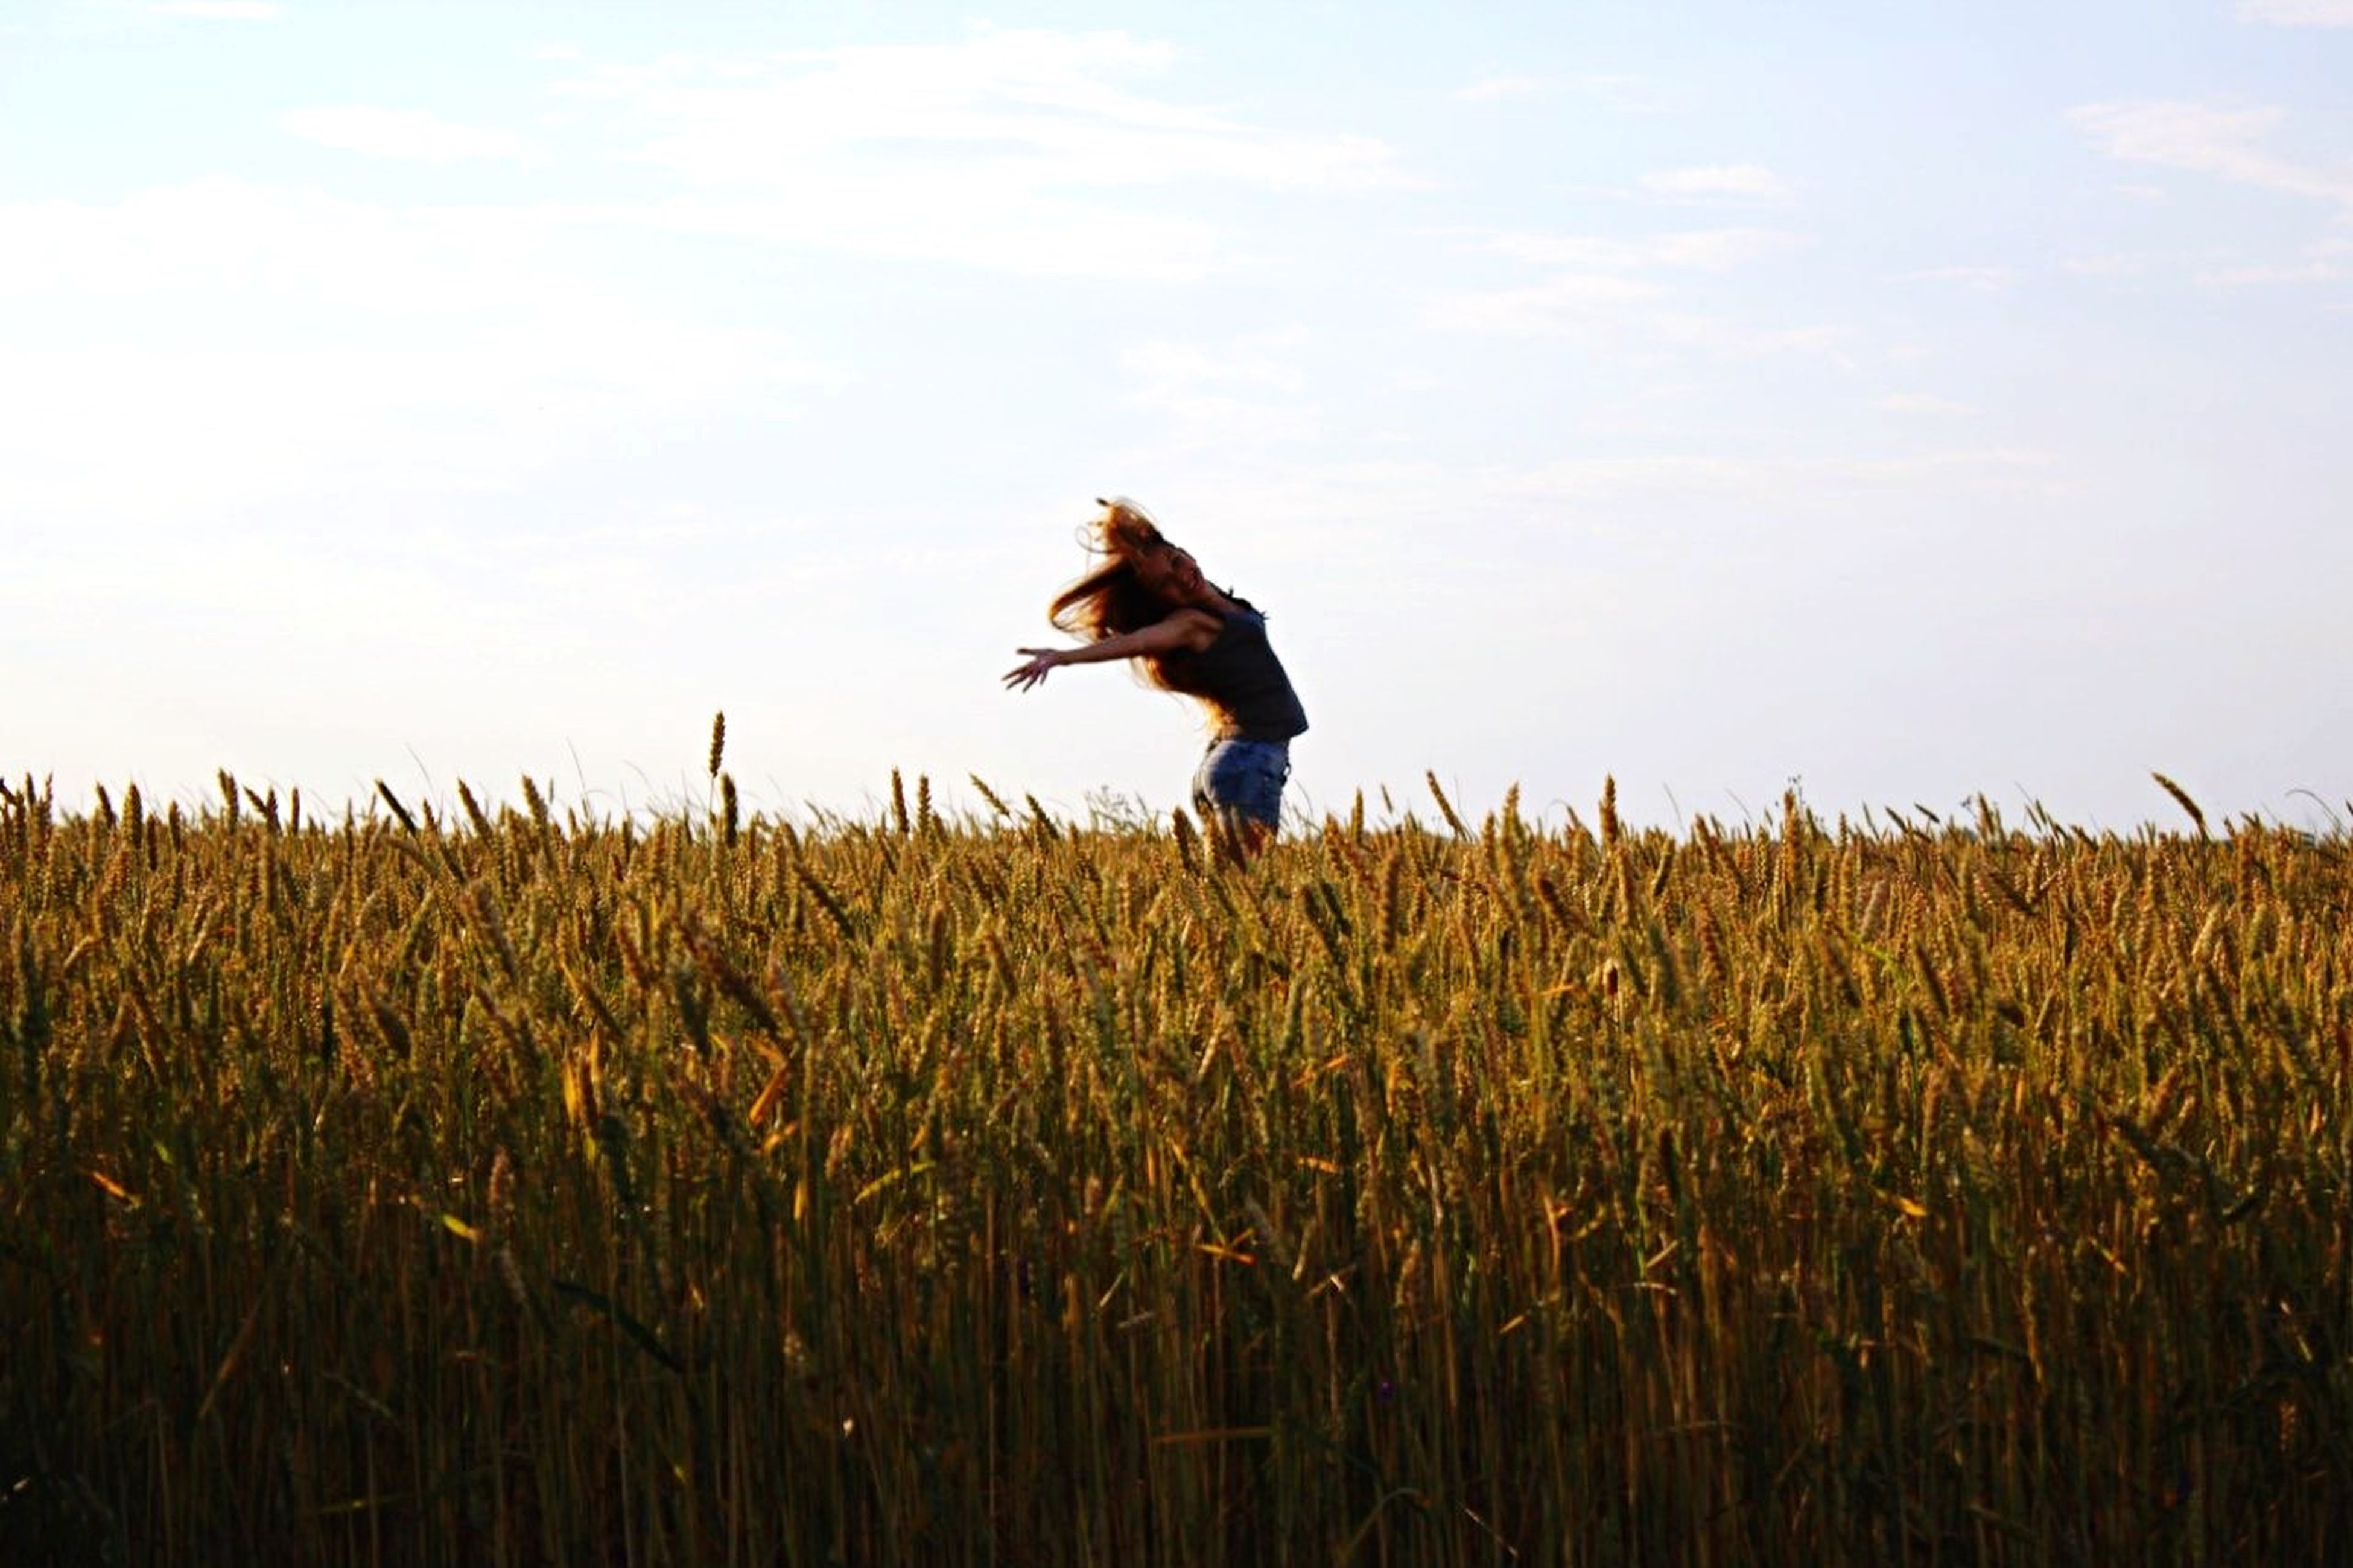 animal themes, one animal, grass, field, full length, sky, bird, domestic animals, nature, rural scene, standing, landscape, plant, one person, agriculture, growth, farm, tranquility, rear view, pets